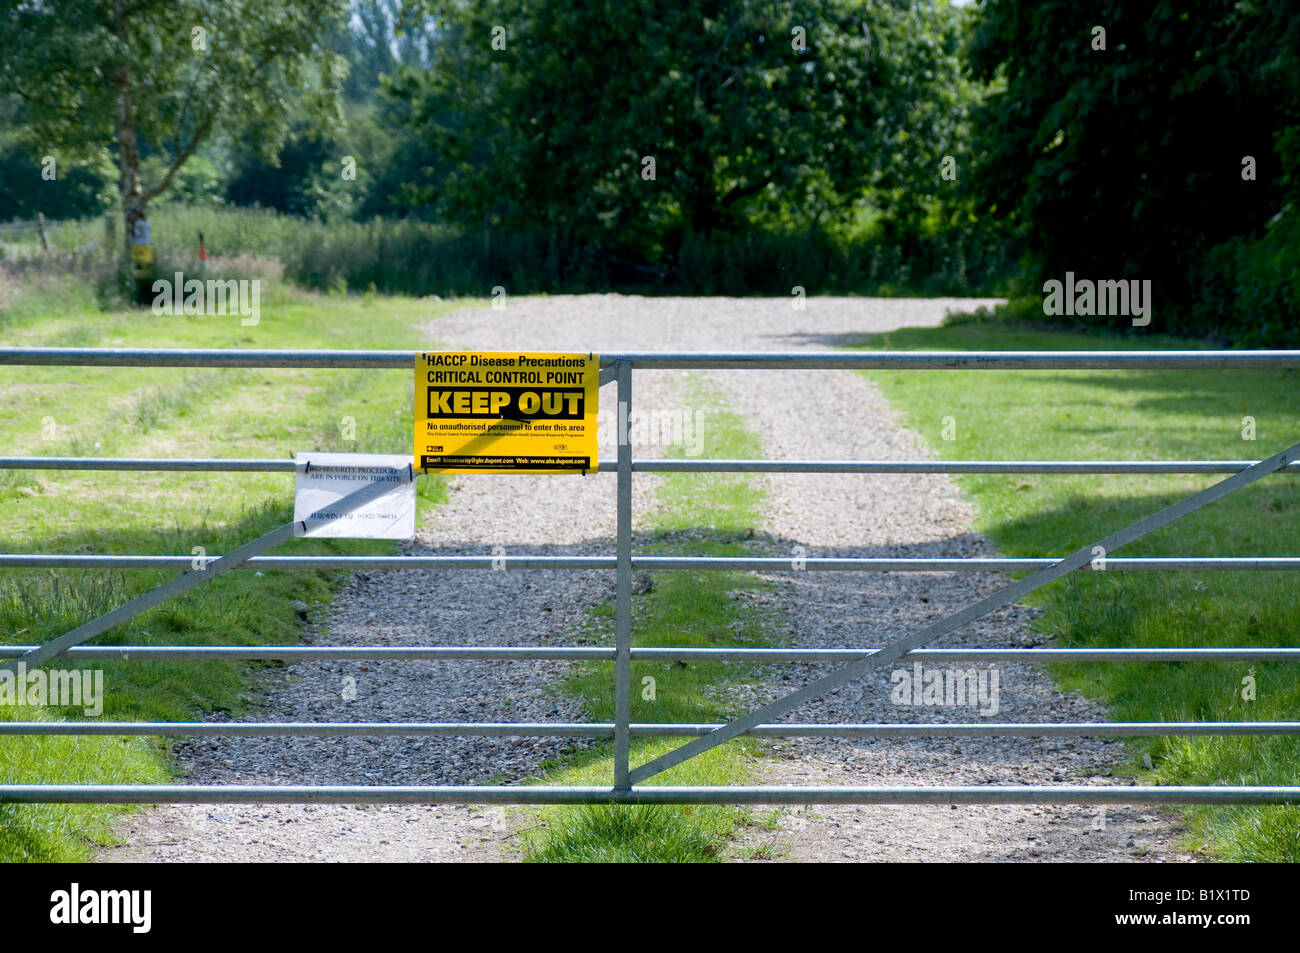 Keep Out disease control notice on farm entrance gate - Stock Image